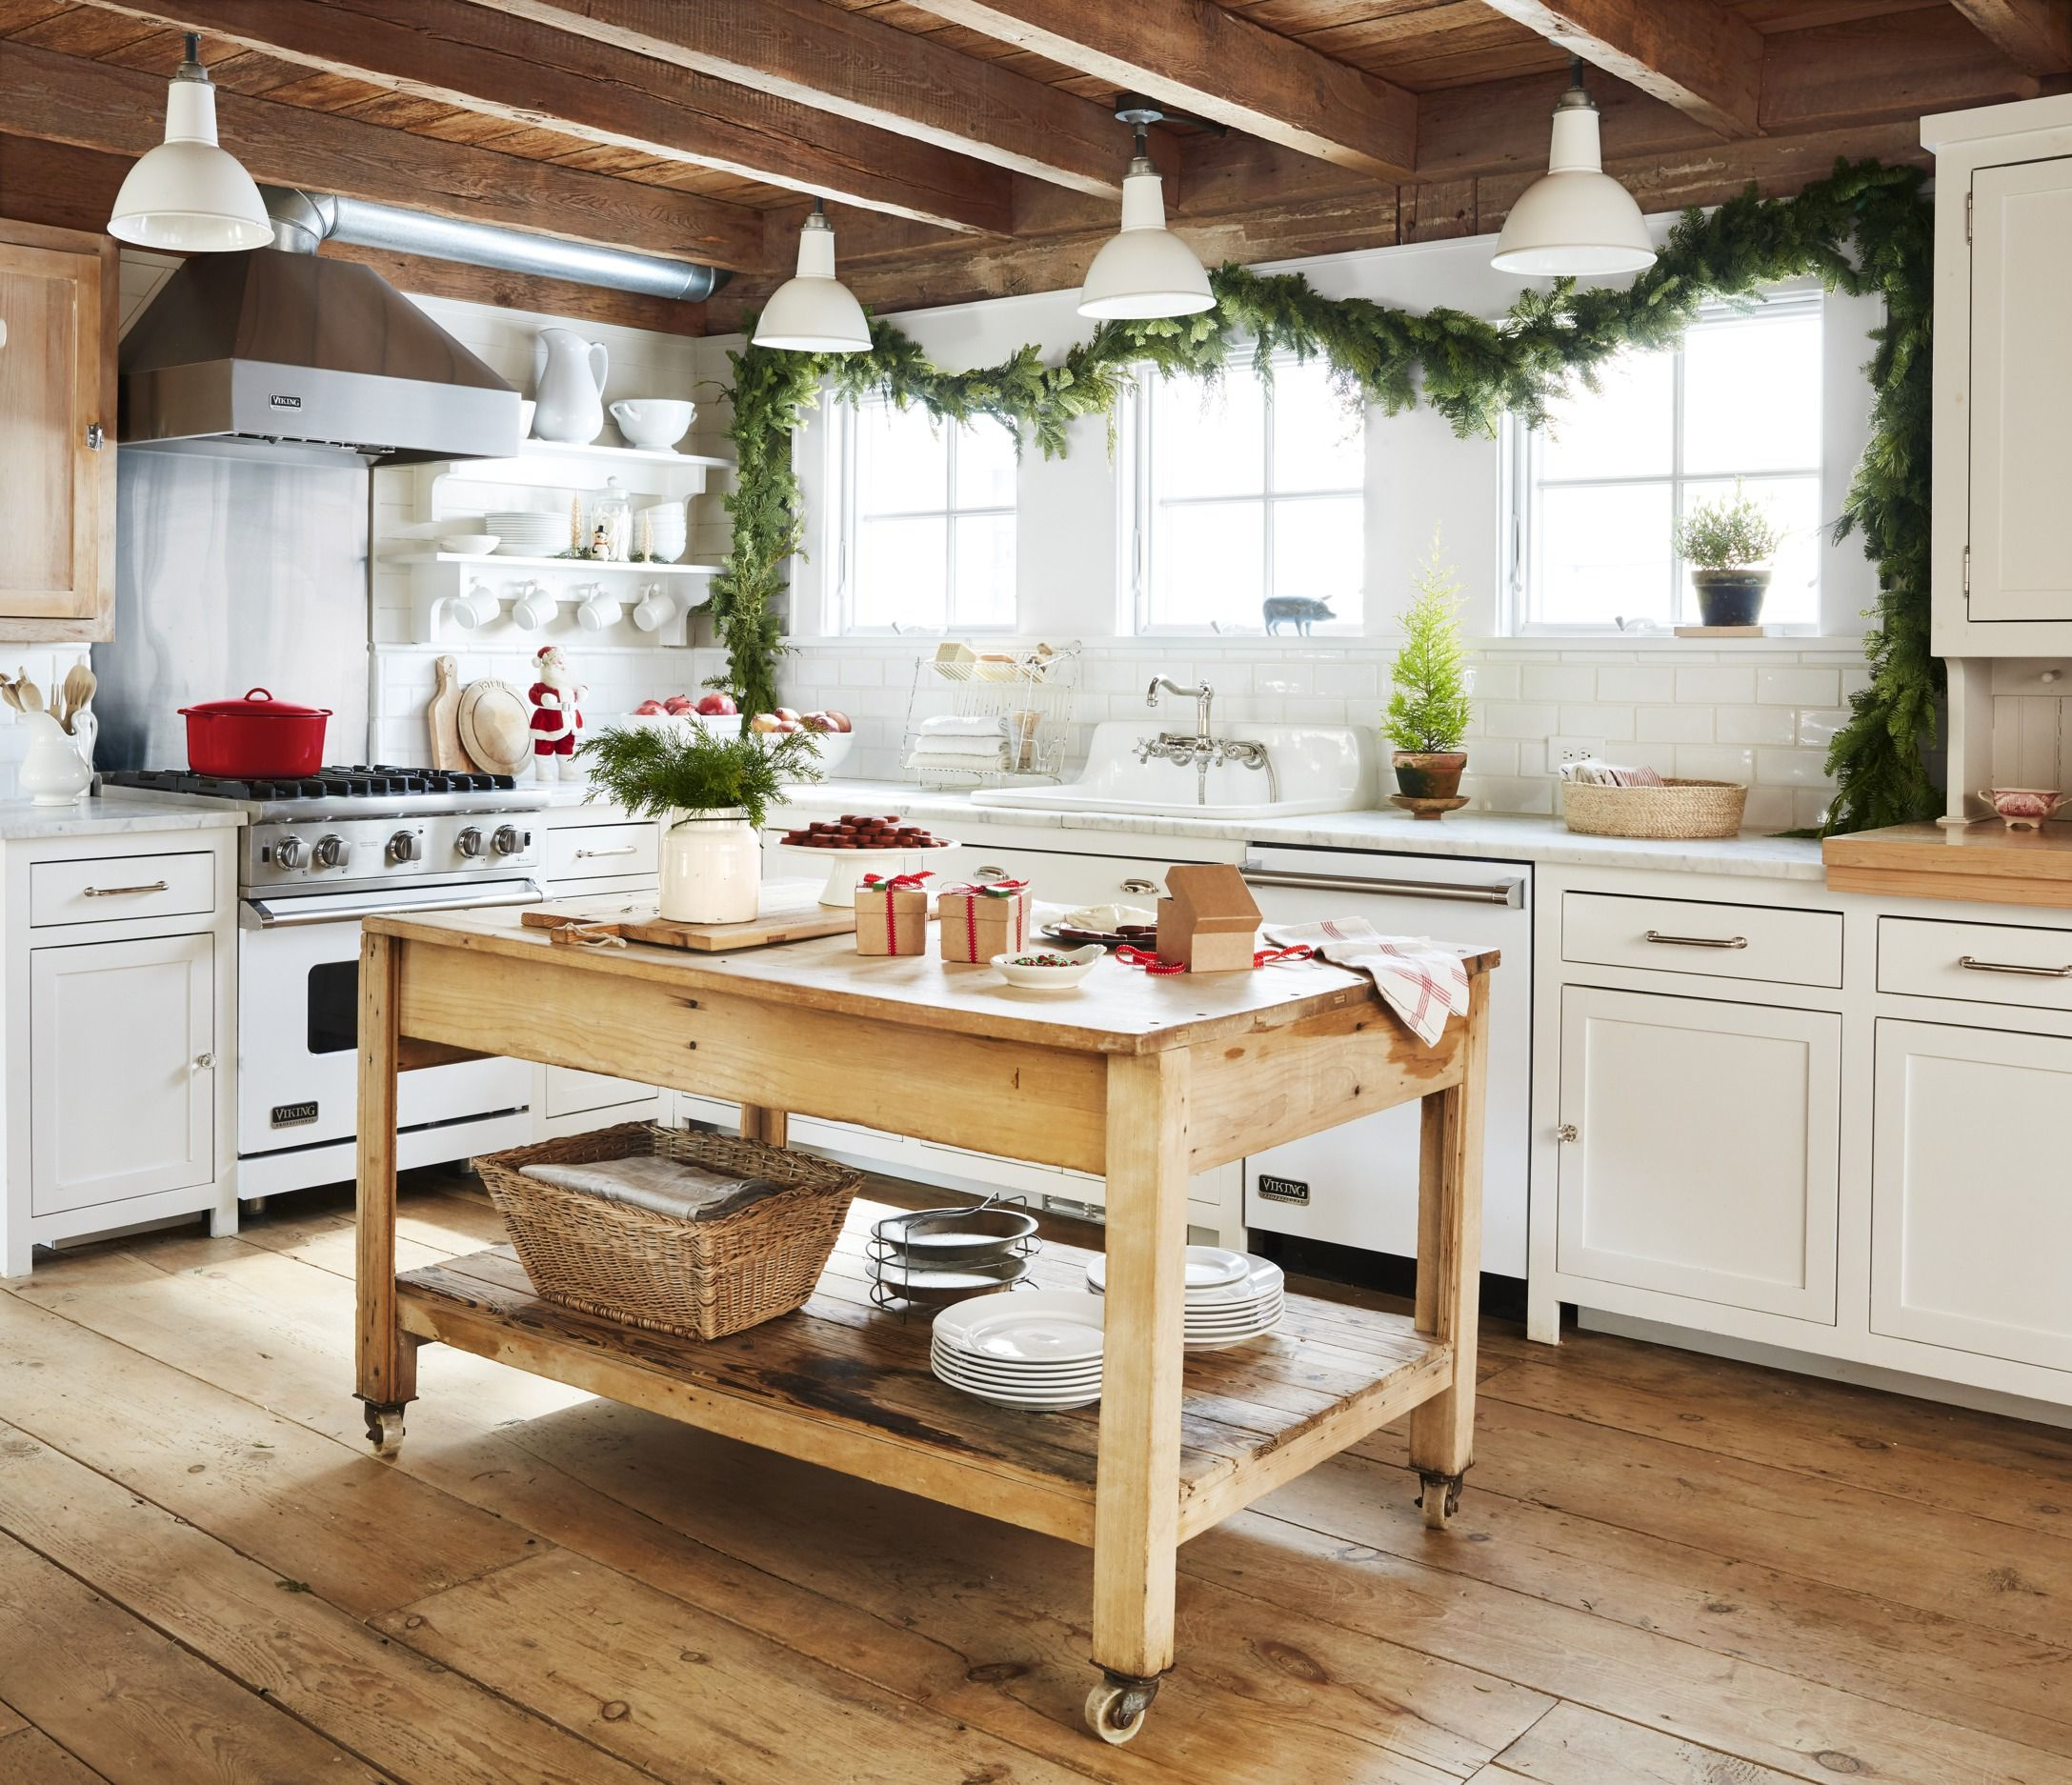 60 Best Farmhouse Style Ideas - Rustic Home Decor Ranch Design Ideas Industrial Kitchen on industrial kitchen bar ideas, industrial style kitchen ideas, industrial ceiling design ideas, modern industrial design ideas, industrial entryway design ideas, industrial storage design ideas, industrial garage design ideas, industrial family room design ideas, industrial interior design bedroom ideas, industrial kitchen decor ideas, horticulture design ideas, vintage small kitchen ideas, cool wire fences ideas, industrial siding ideas, industrial jewelry ideas, stainless steel design ideas, industrial restaurant design ideas, industrial vastu, pool table design ideas, industrial landscape design ideas,